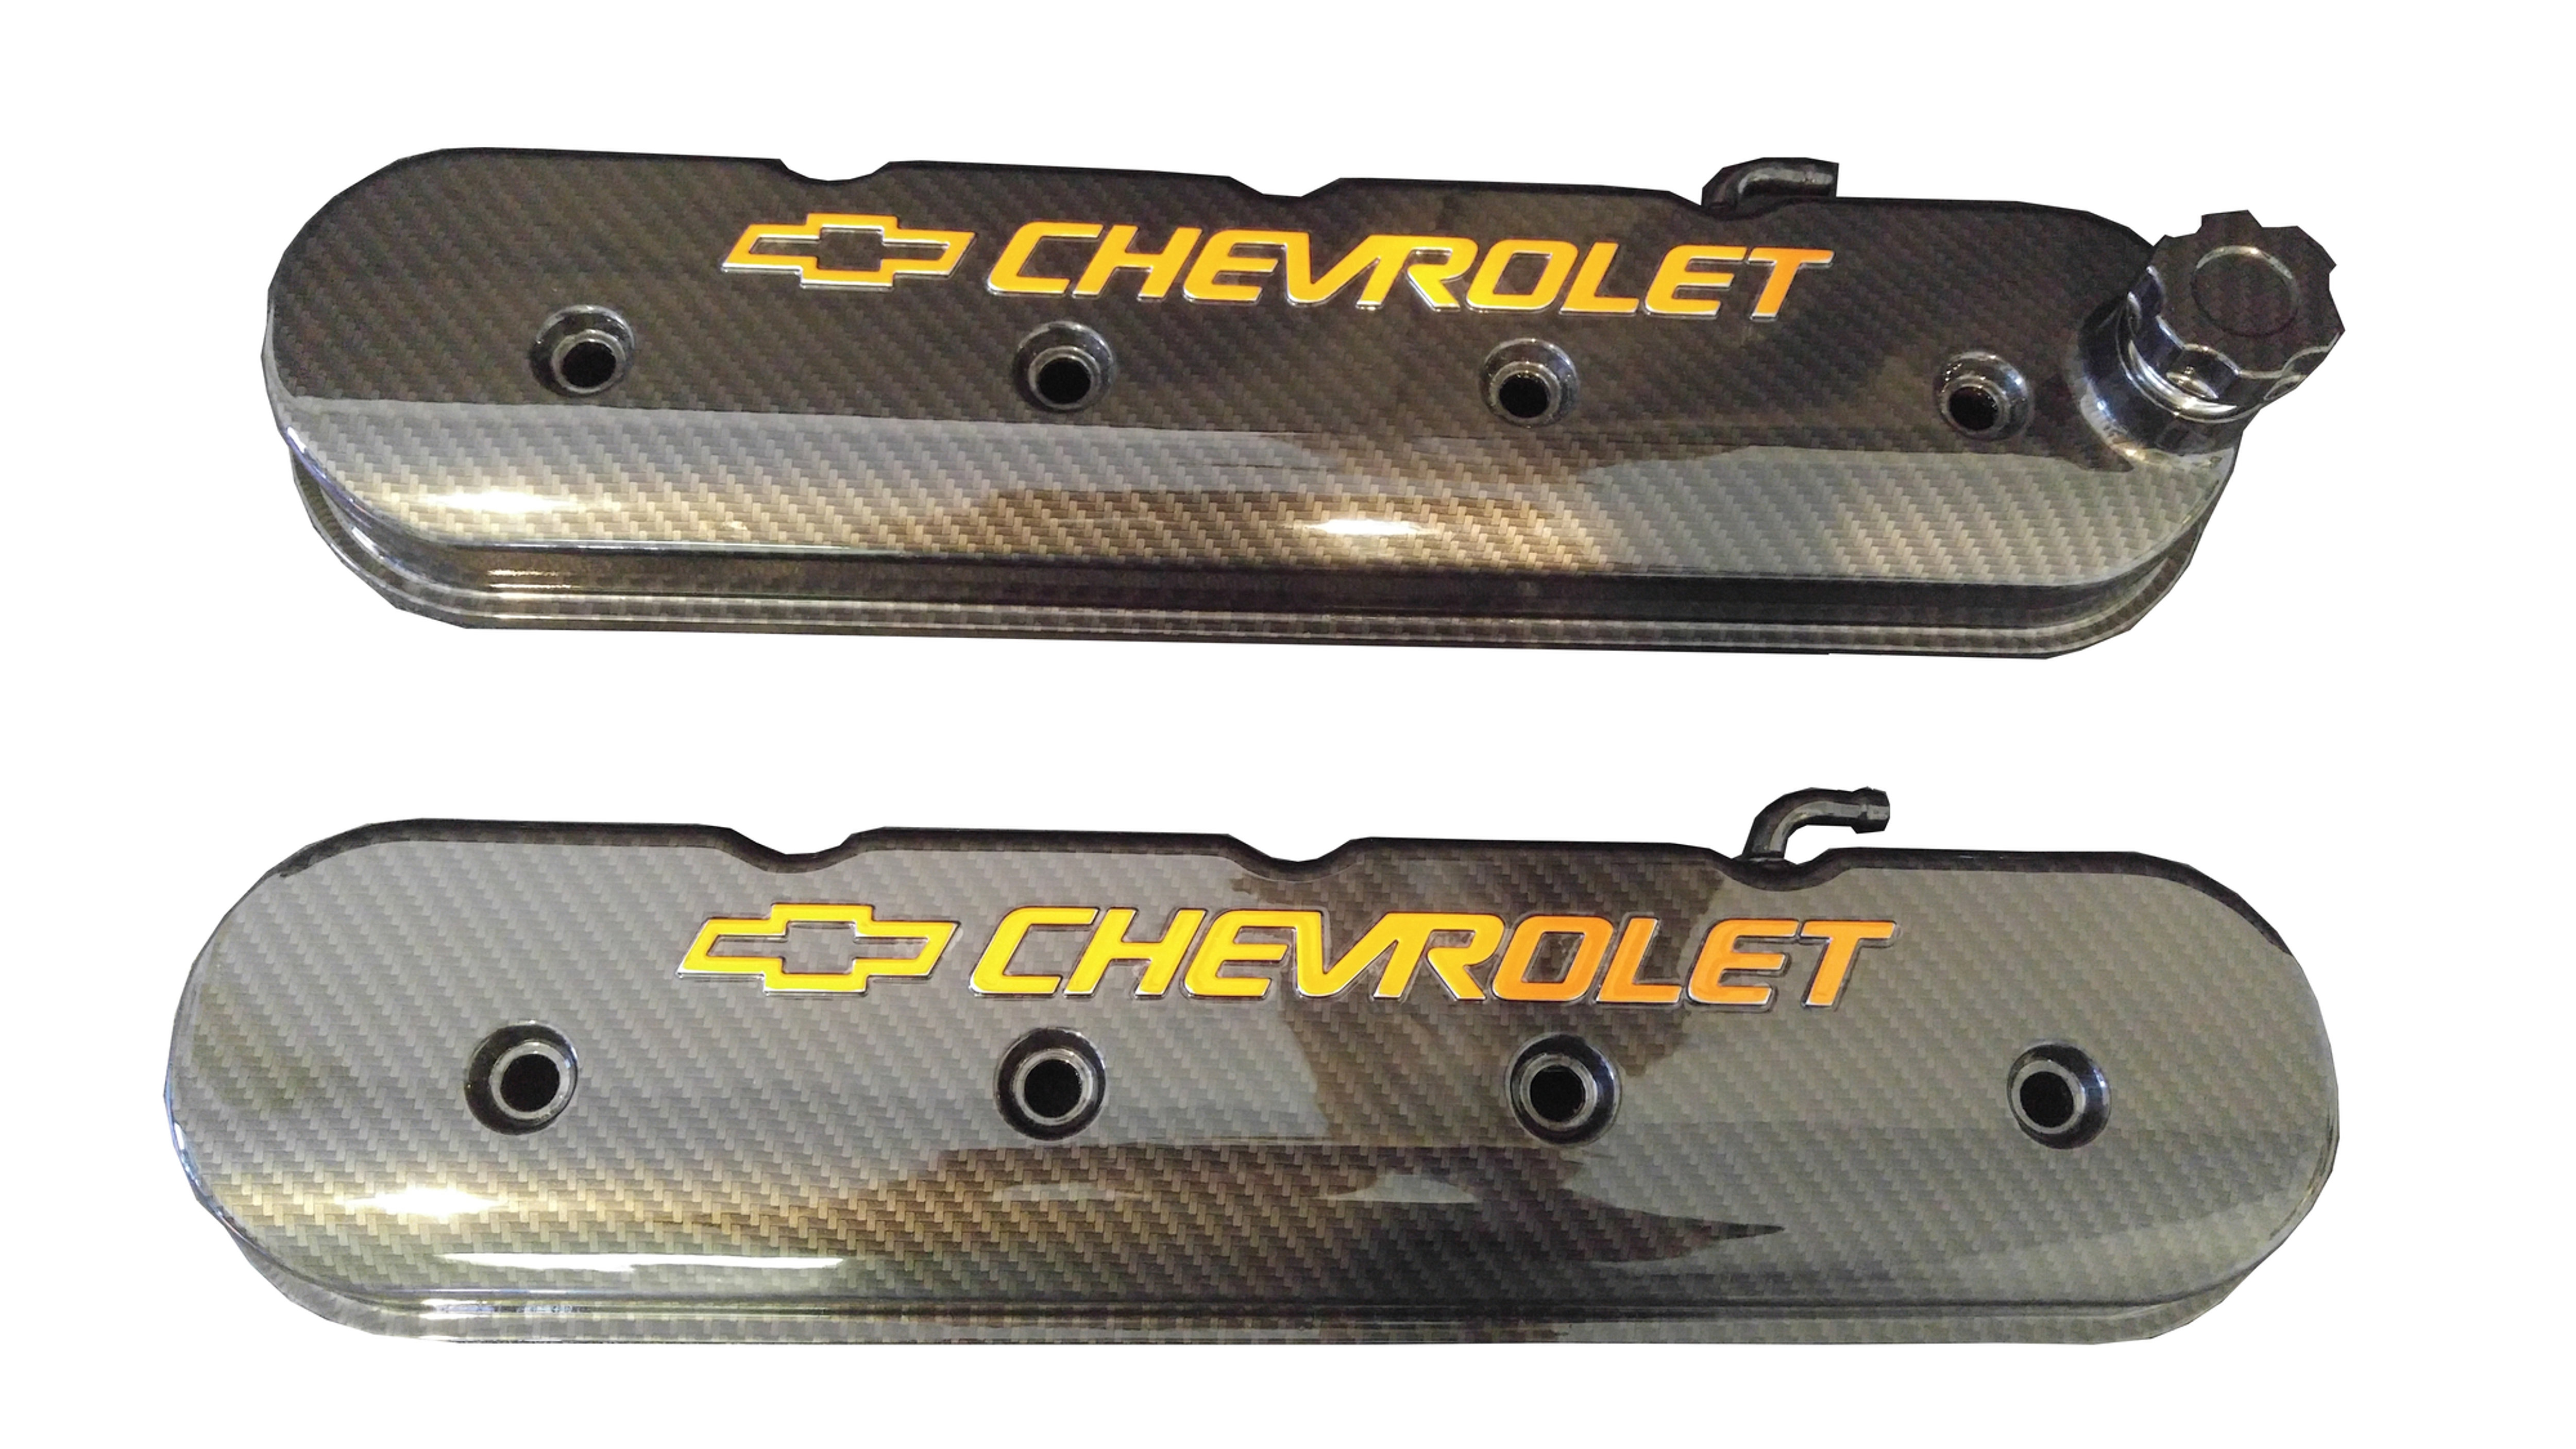 Tall Ls Valve Cover With Bowtie Chevrolet Logo Sport Carbon Fiber 241 400 Bagrbuck